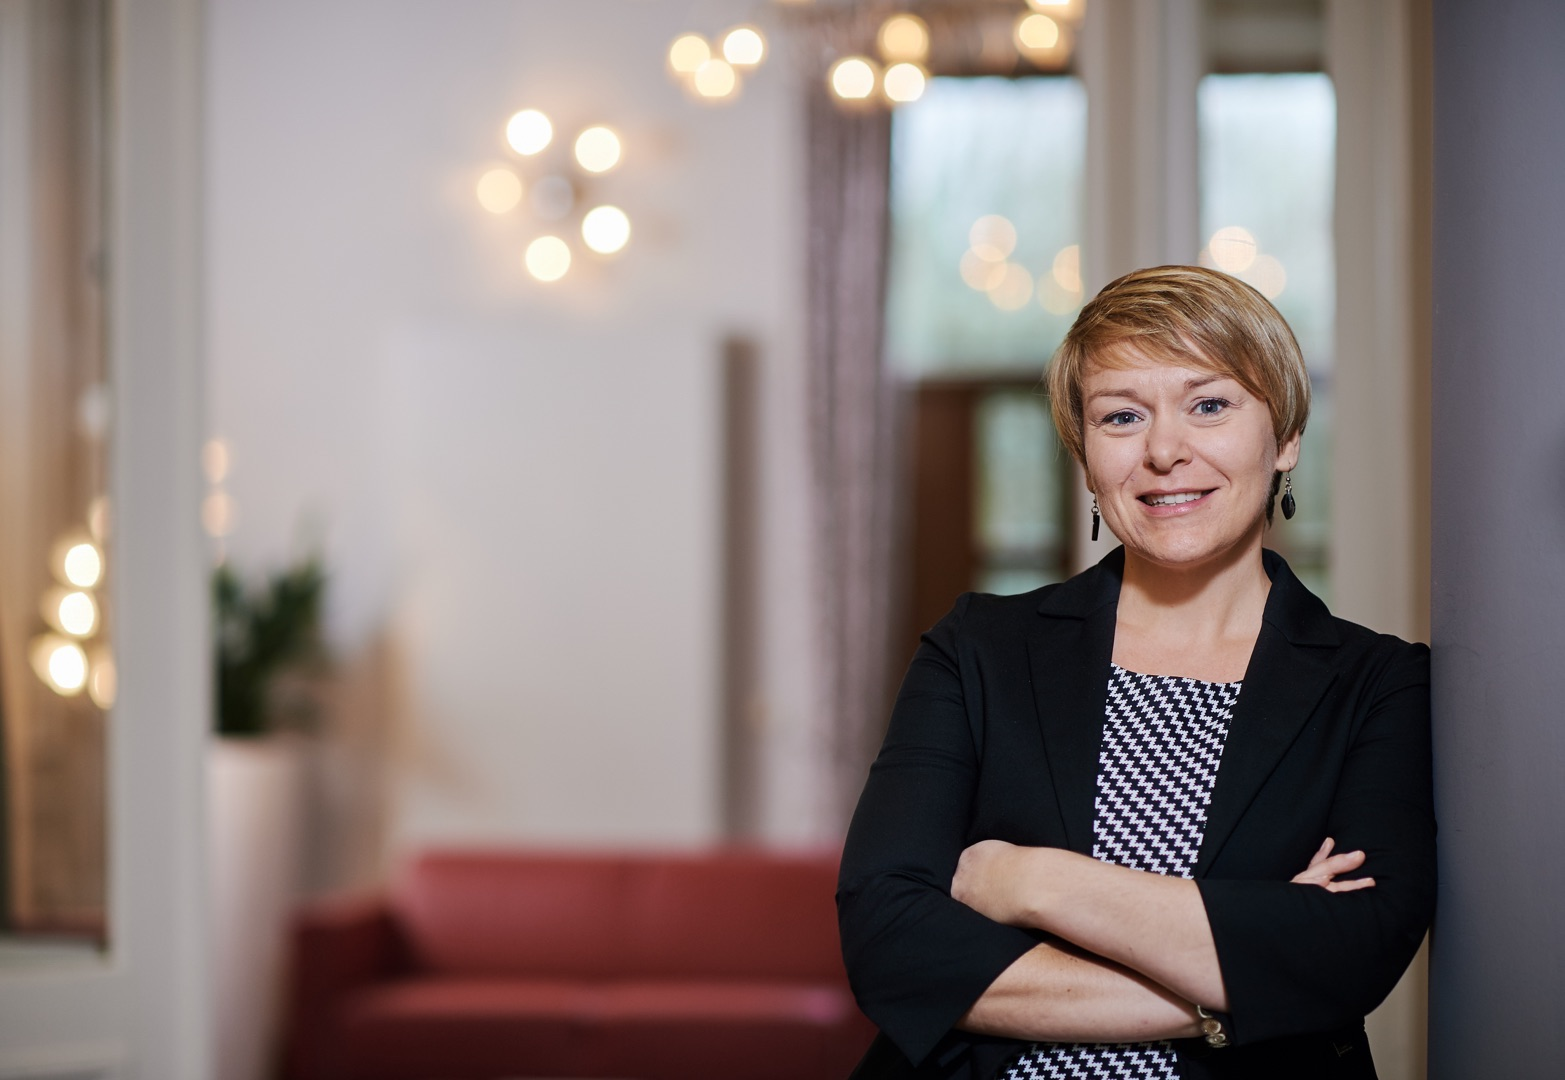 Ivy Vanderheyden, marketingdirecteur bij SAS Belux